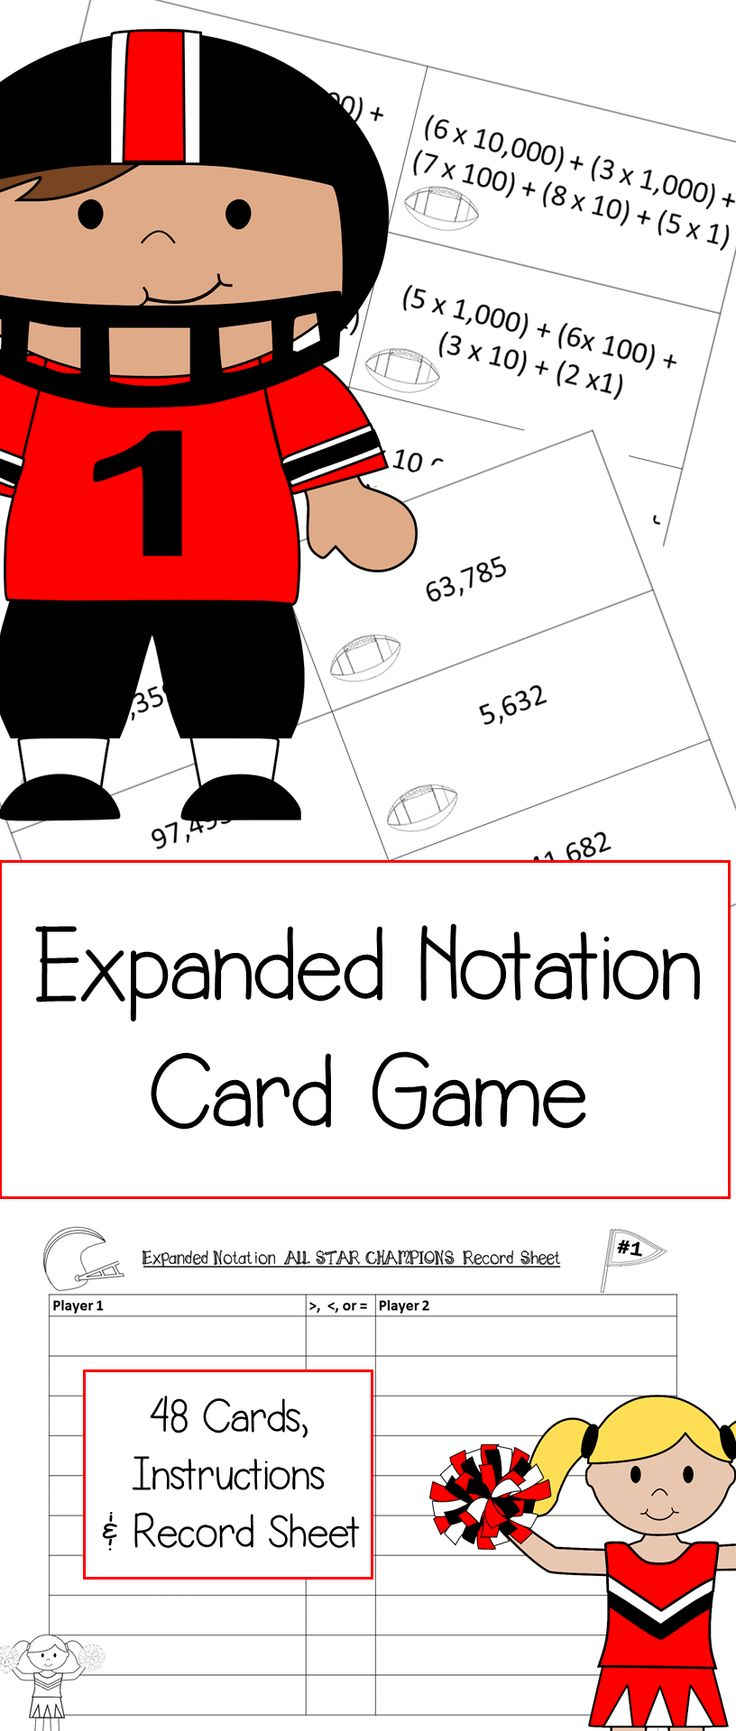 Super fun football themed game to practice expanded notation!